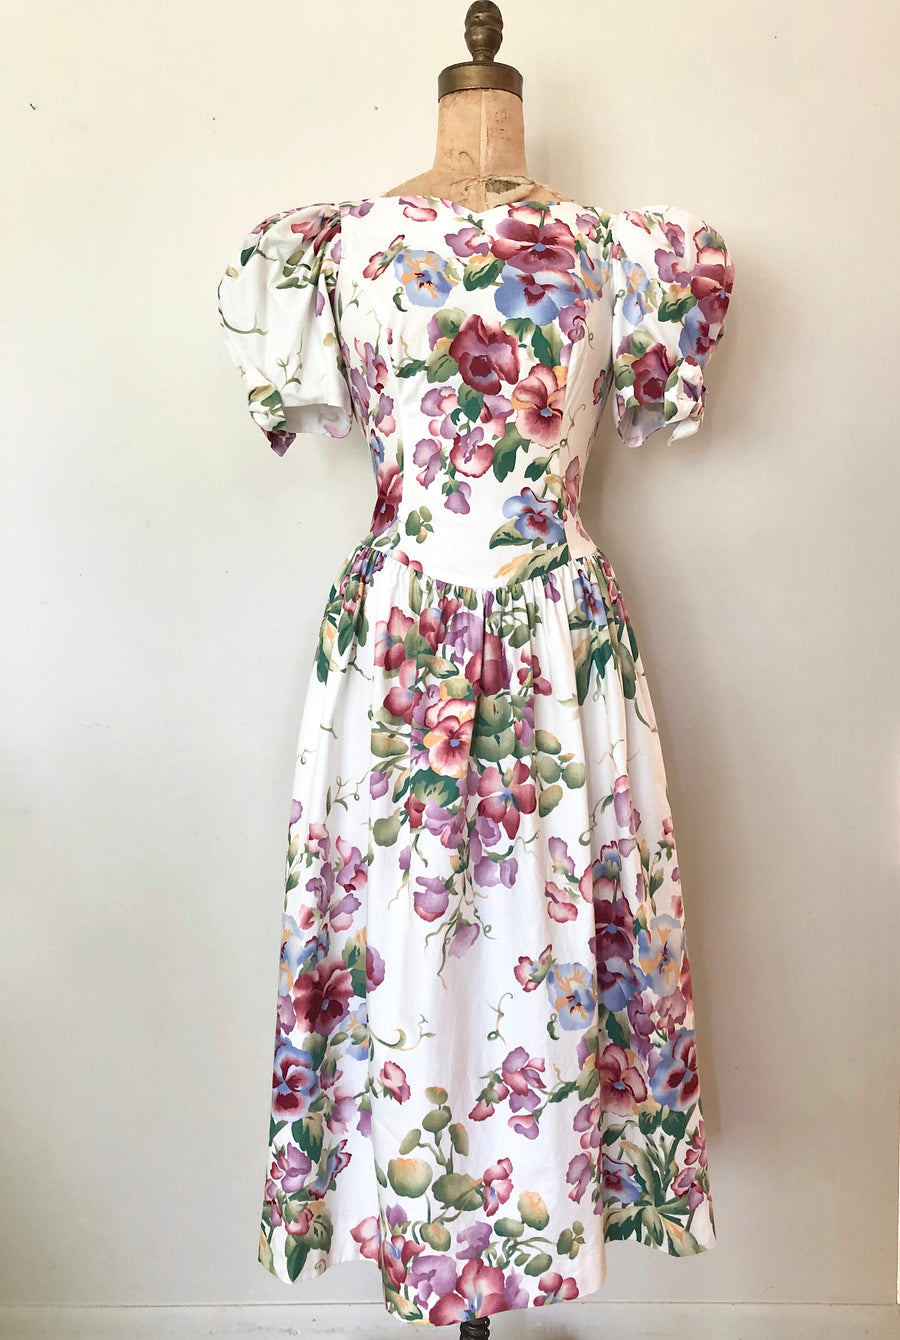 1980's Floral Cotton Dress with Puff Sleeves - Size M